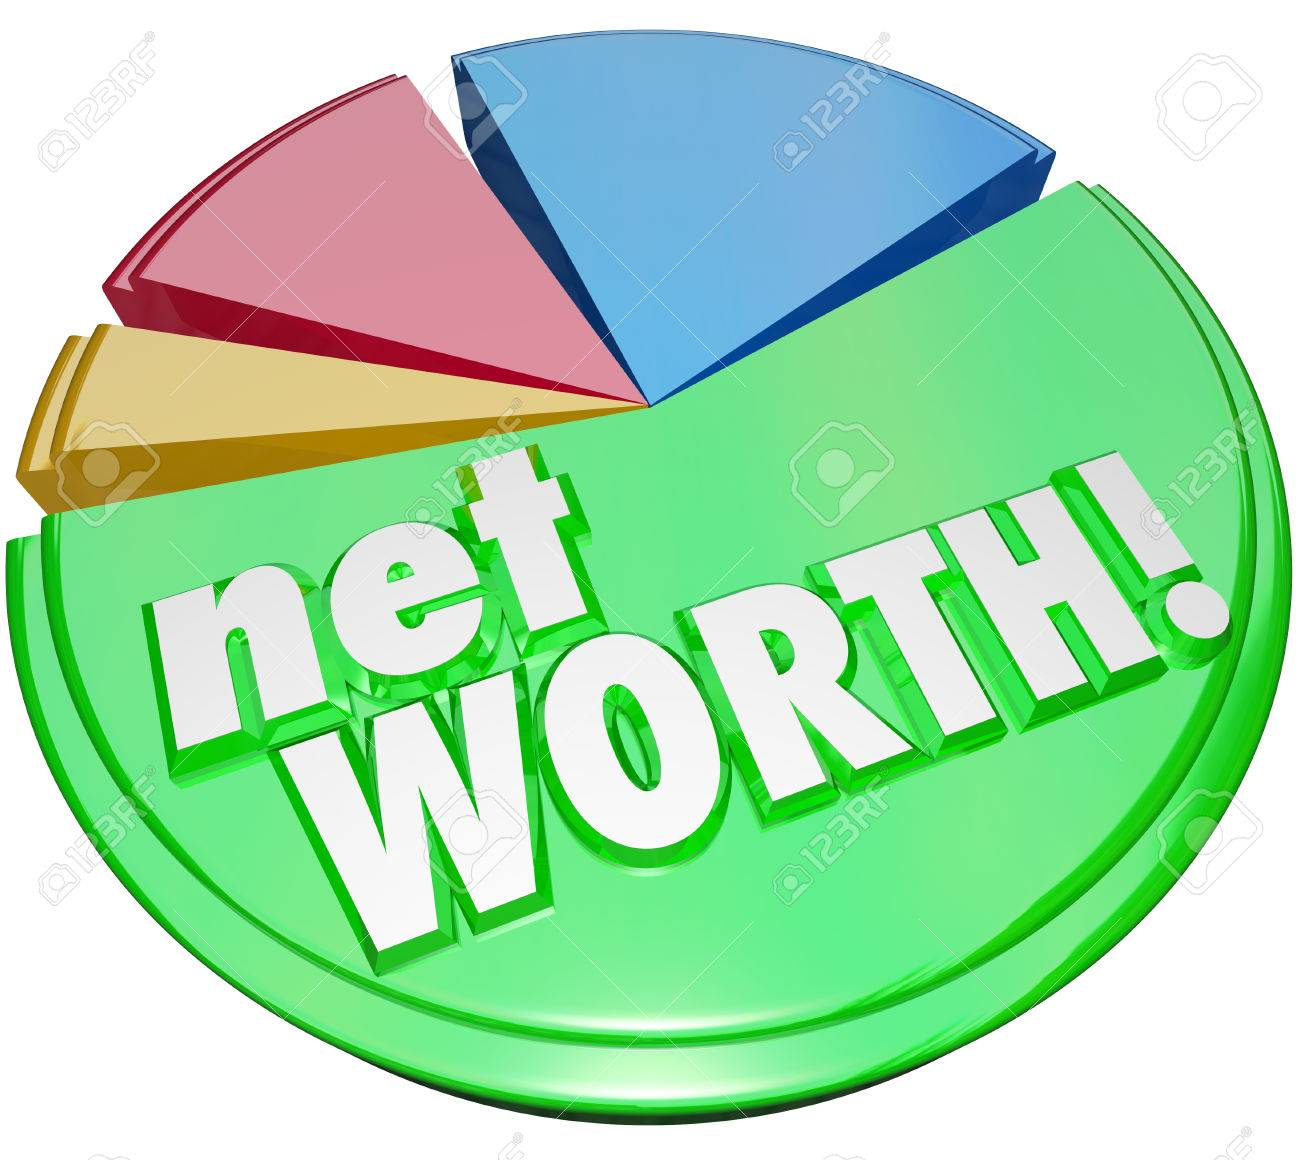 Net worth words on a pie chart comparing the total value of your net worth words on a pie chart comparing the total value of your assets versus your nvjuhfo Gallery